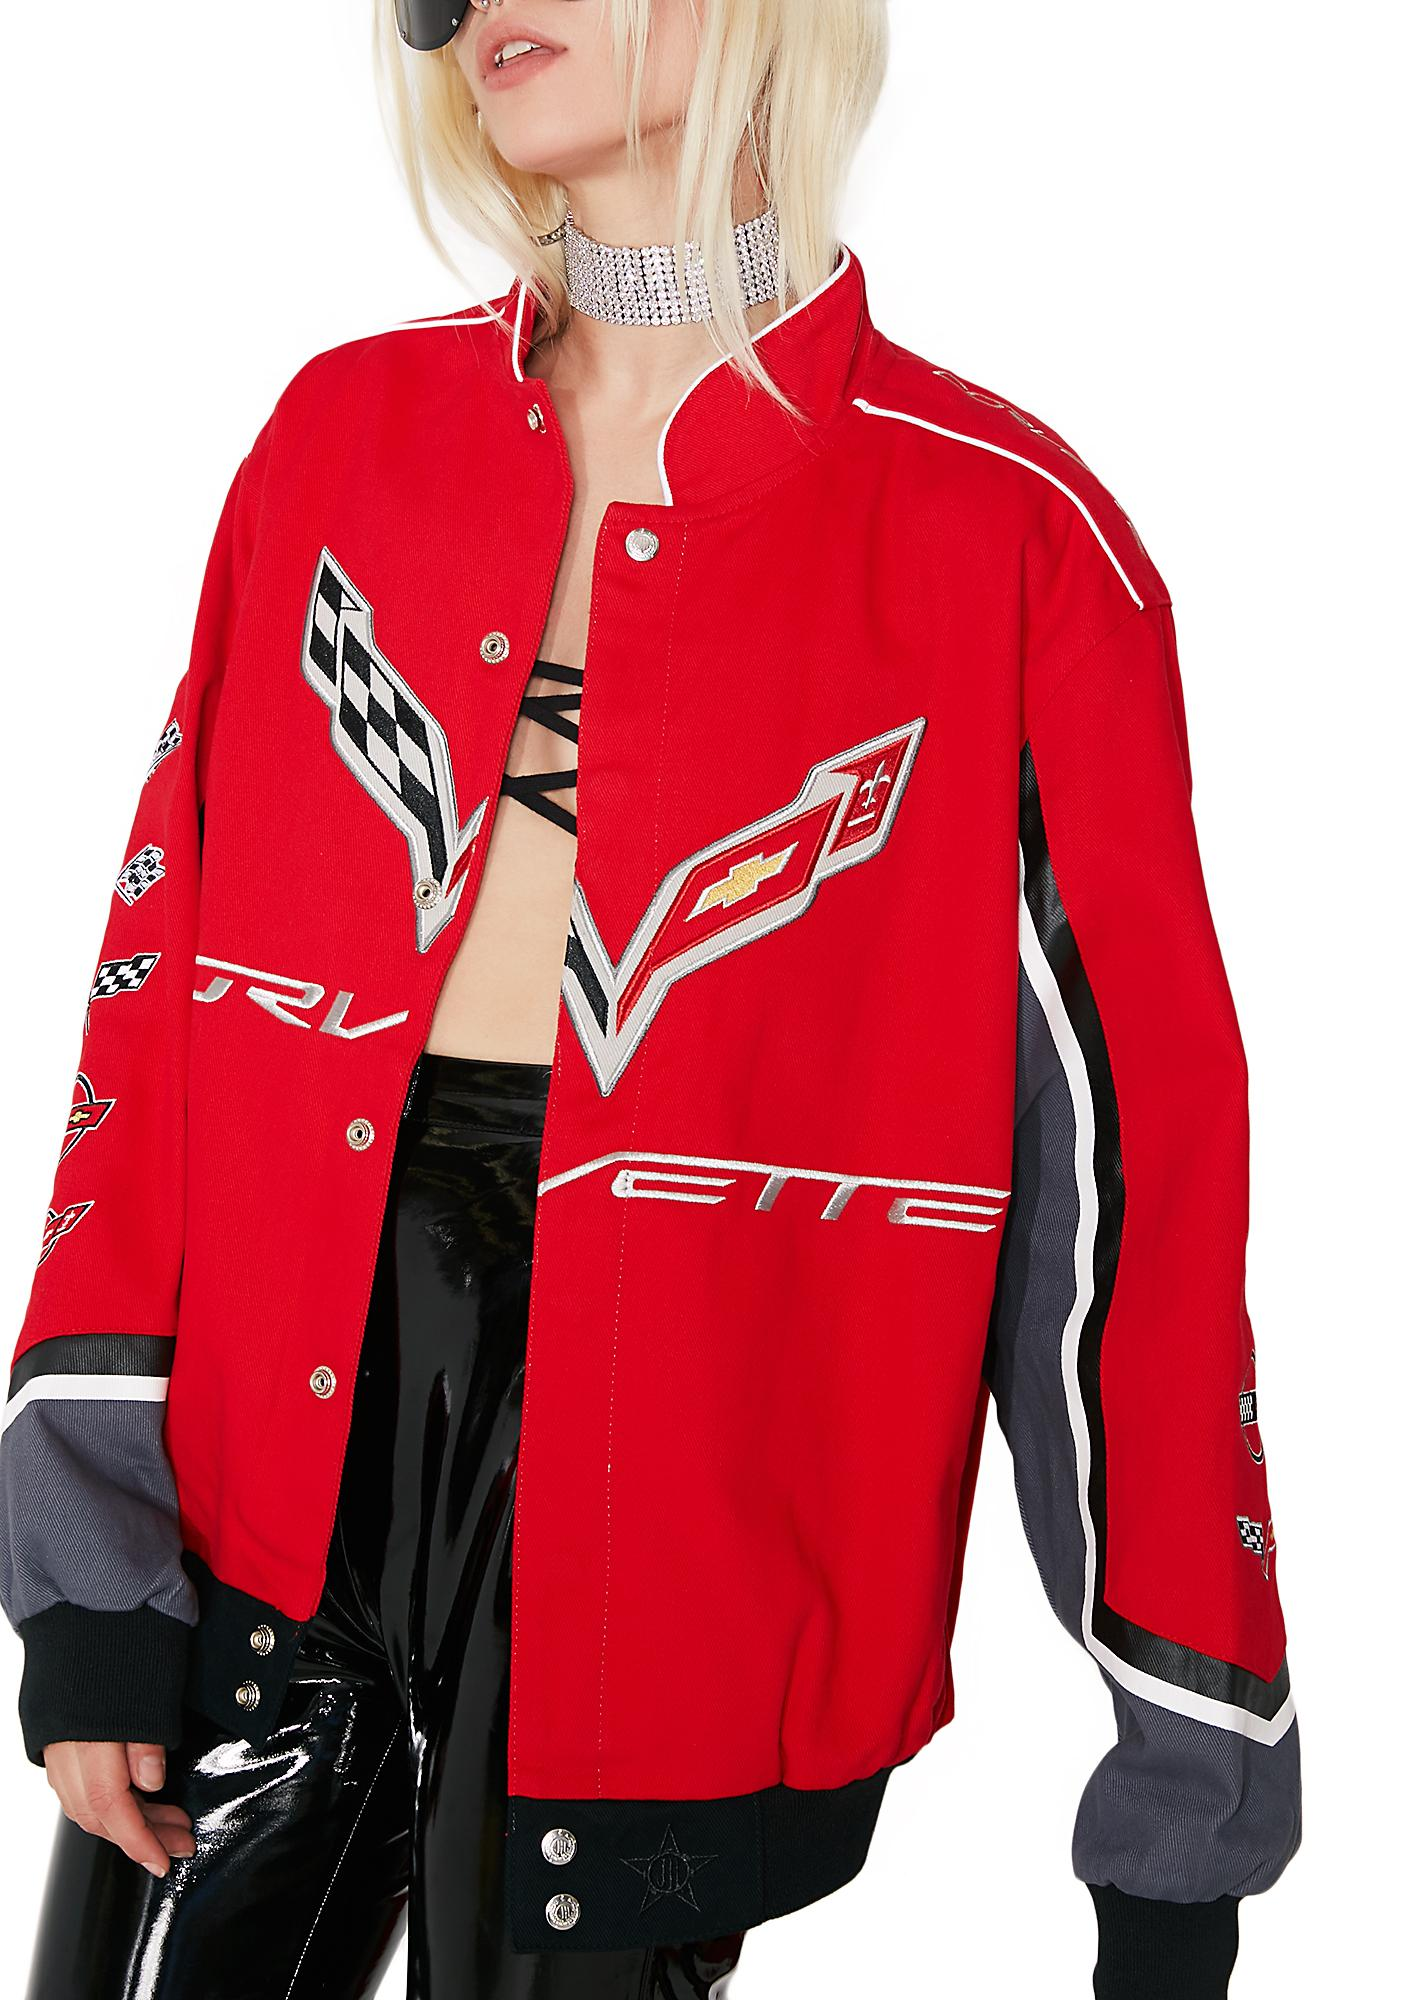 2017 Chevy Corvette Collage Twill Jacket